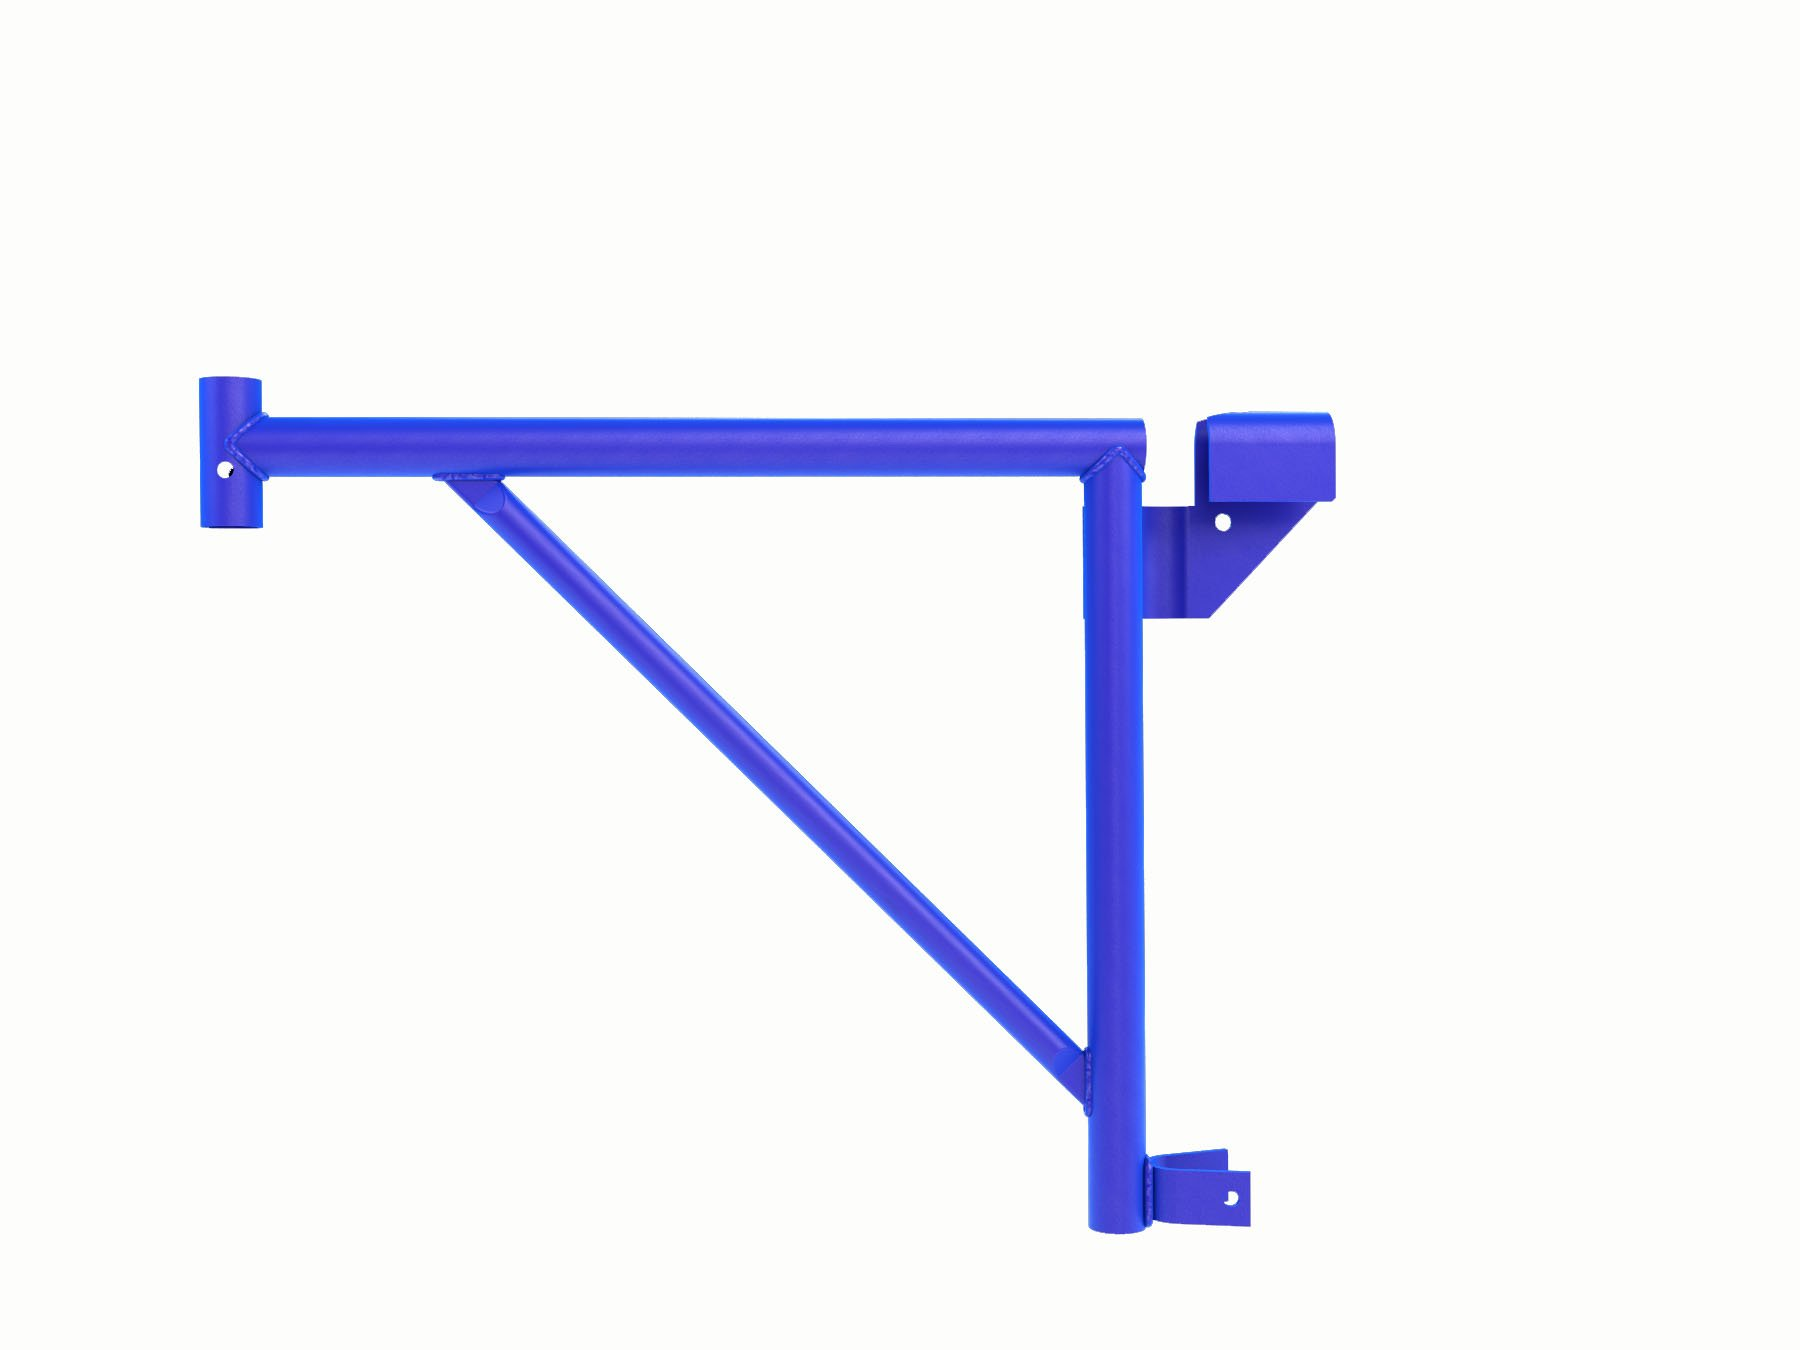 Bon 11-282 Side Scaffold Bracket, 24-Inch by bon